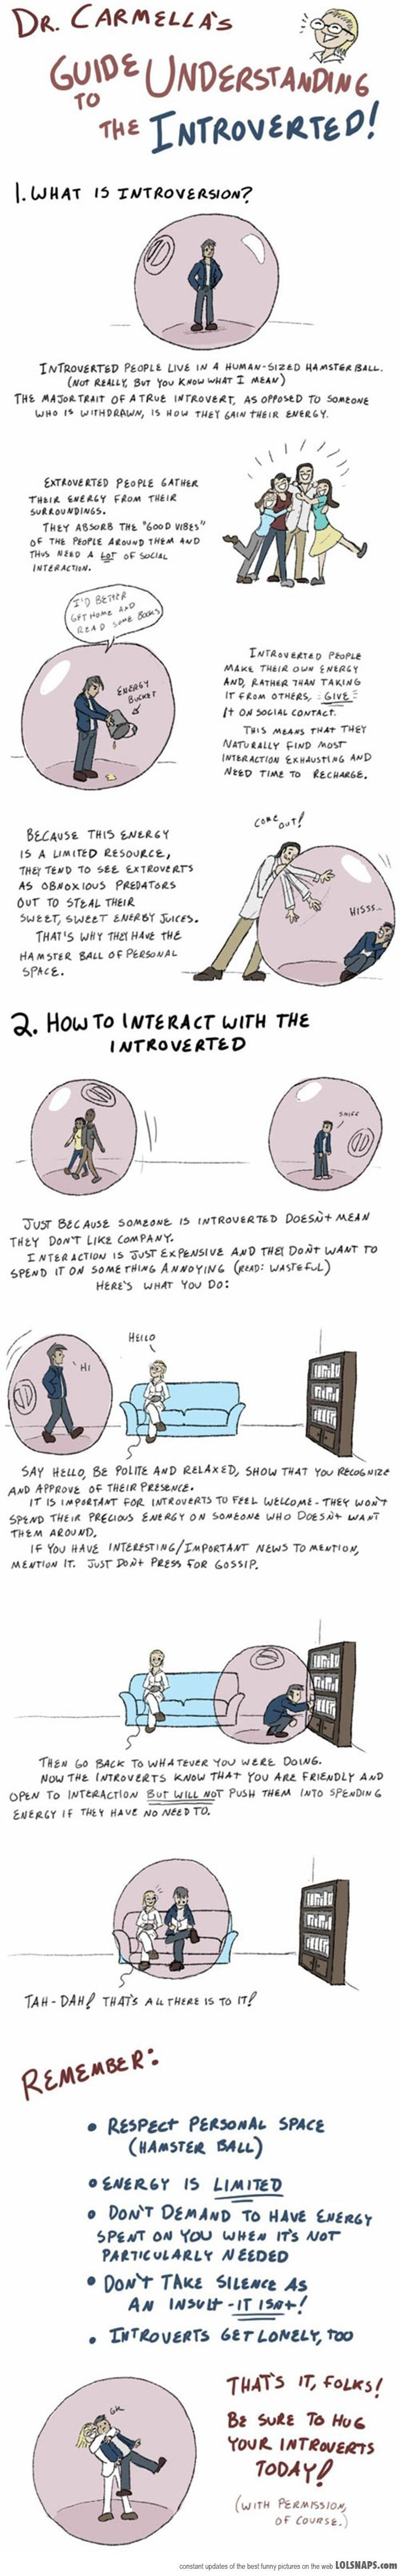 dating tips for introverts people images funny jokes